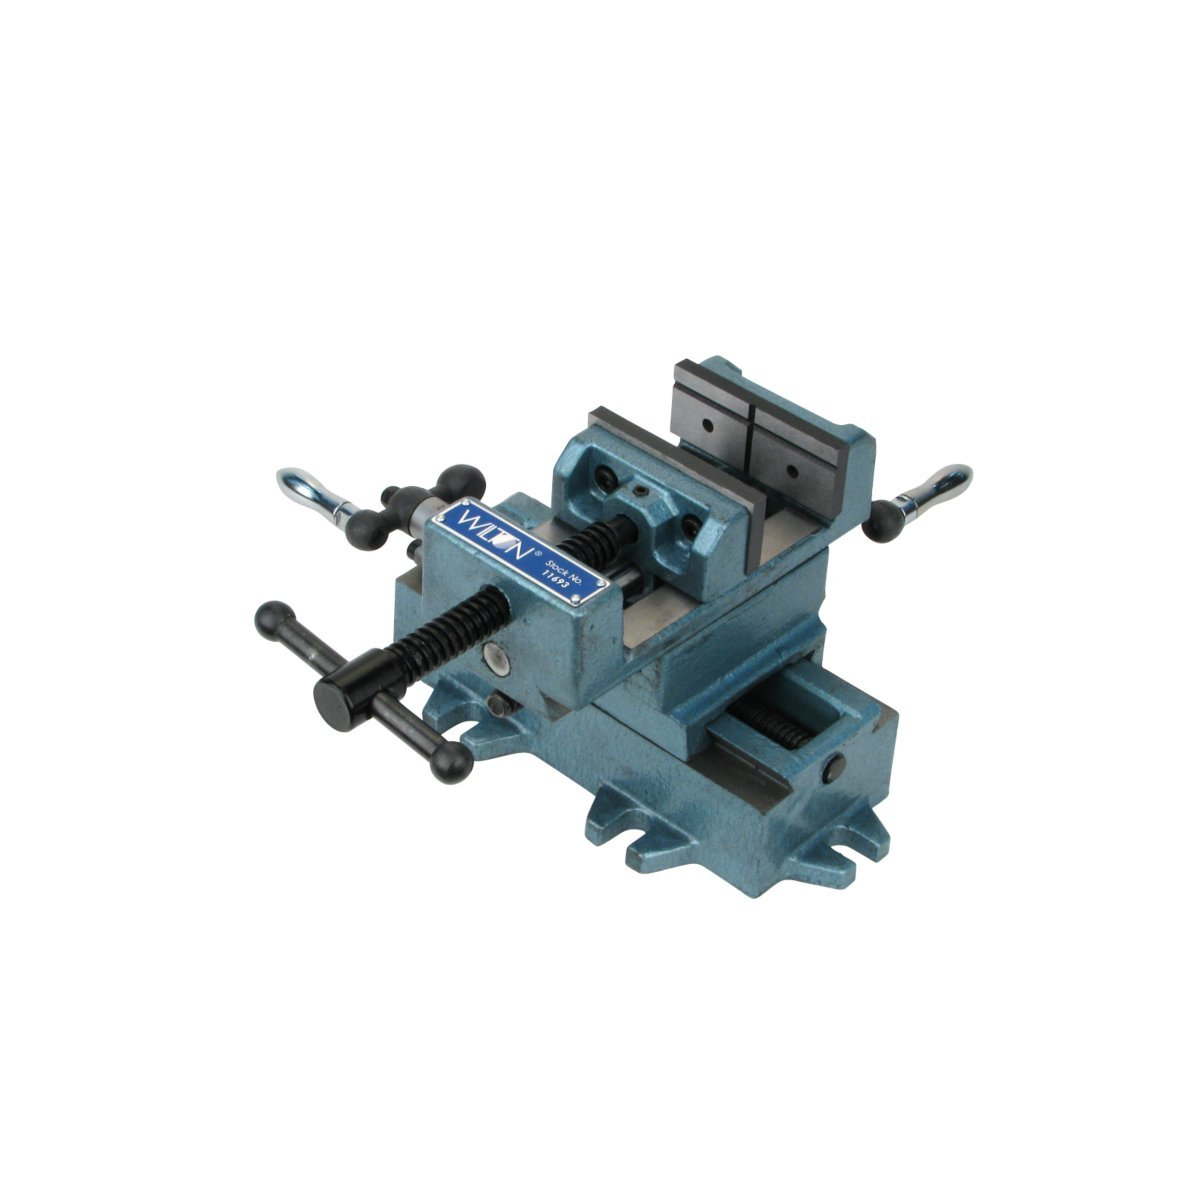 Wilton 11696 6-Inch Cross Slide Drill Press Vise by WILTON